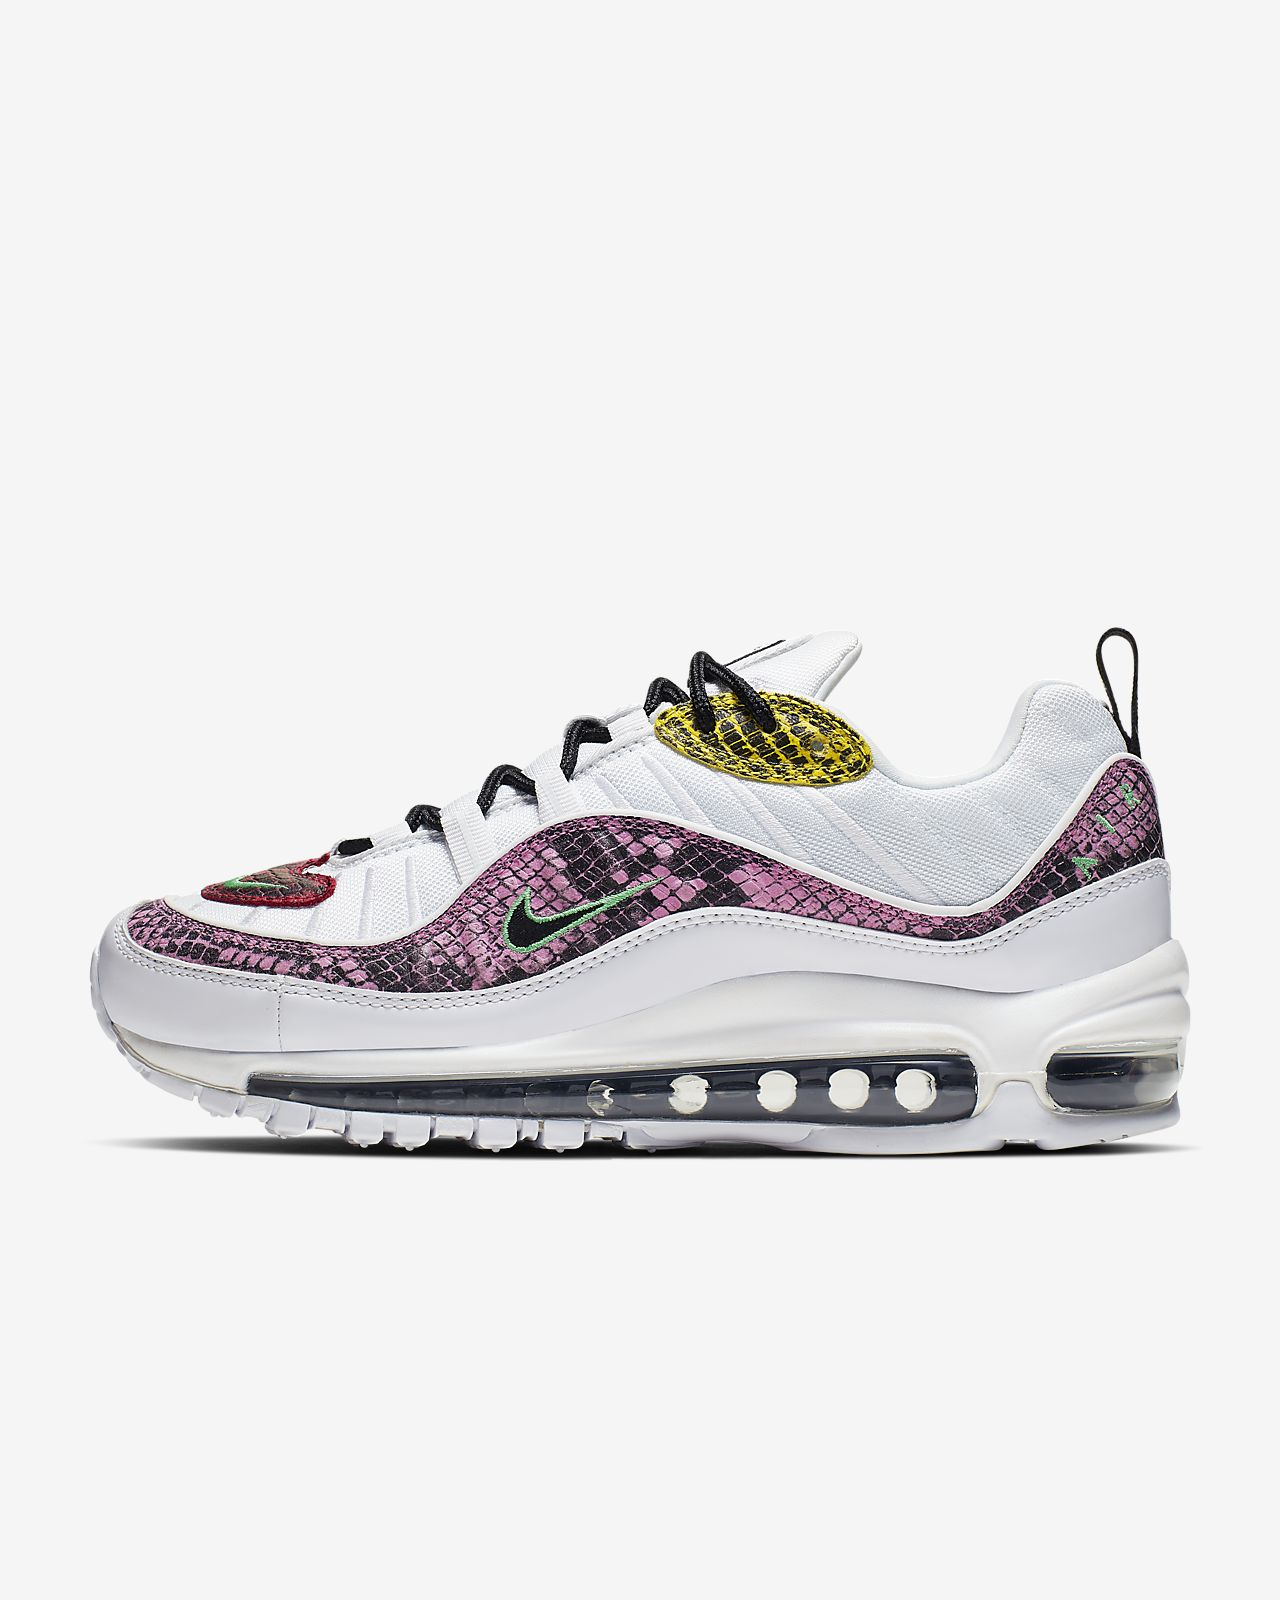 2f9d56b368 Nike Air Max 98 Premium Animal Women s Shoe. Nike.com GB